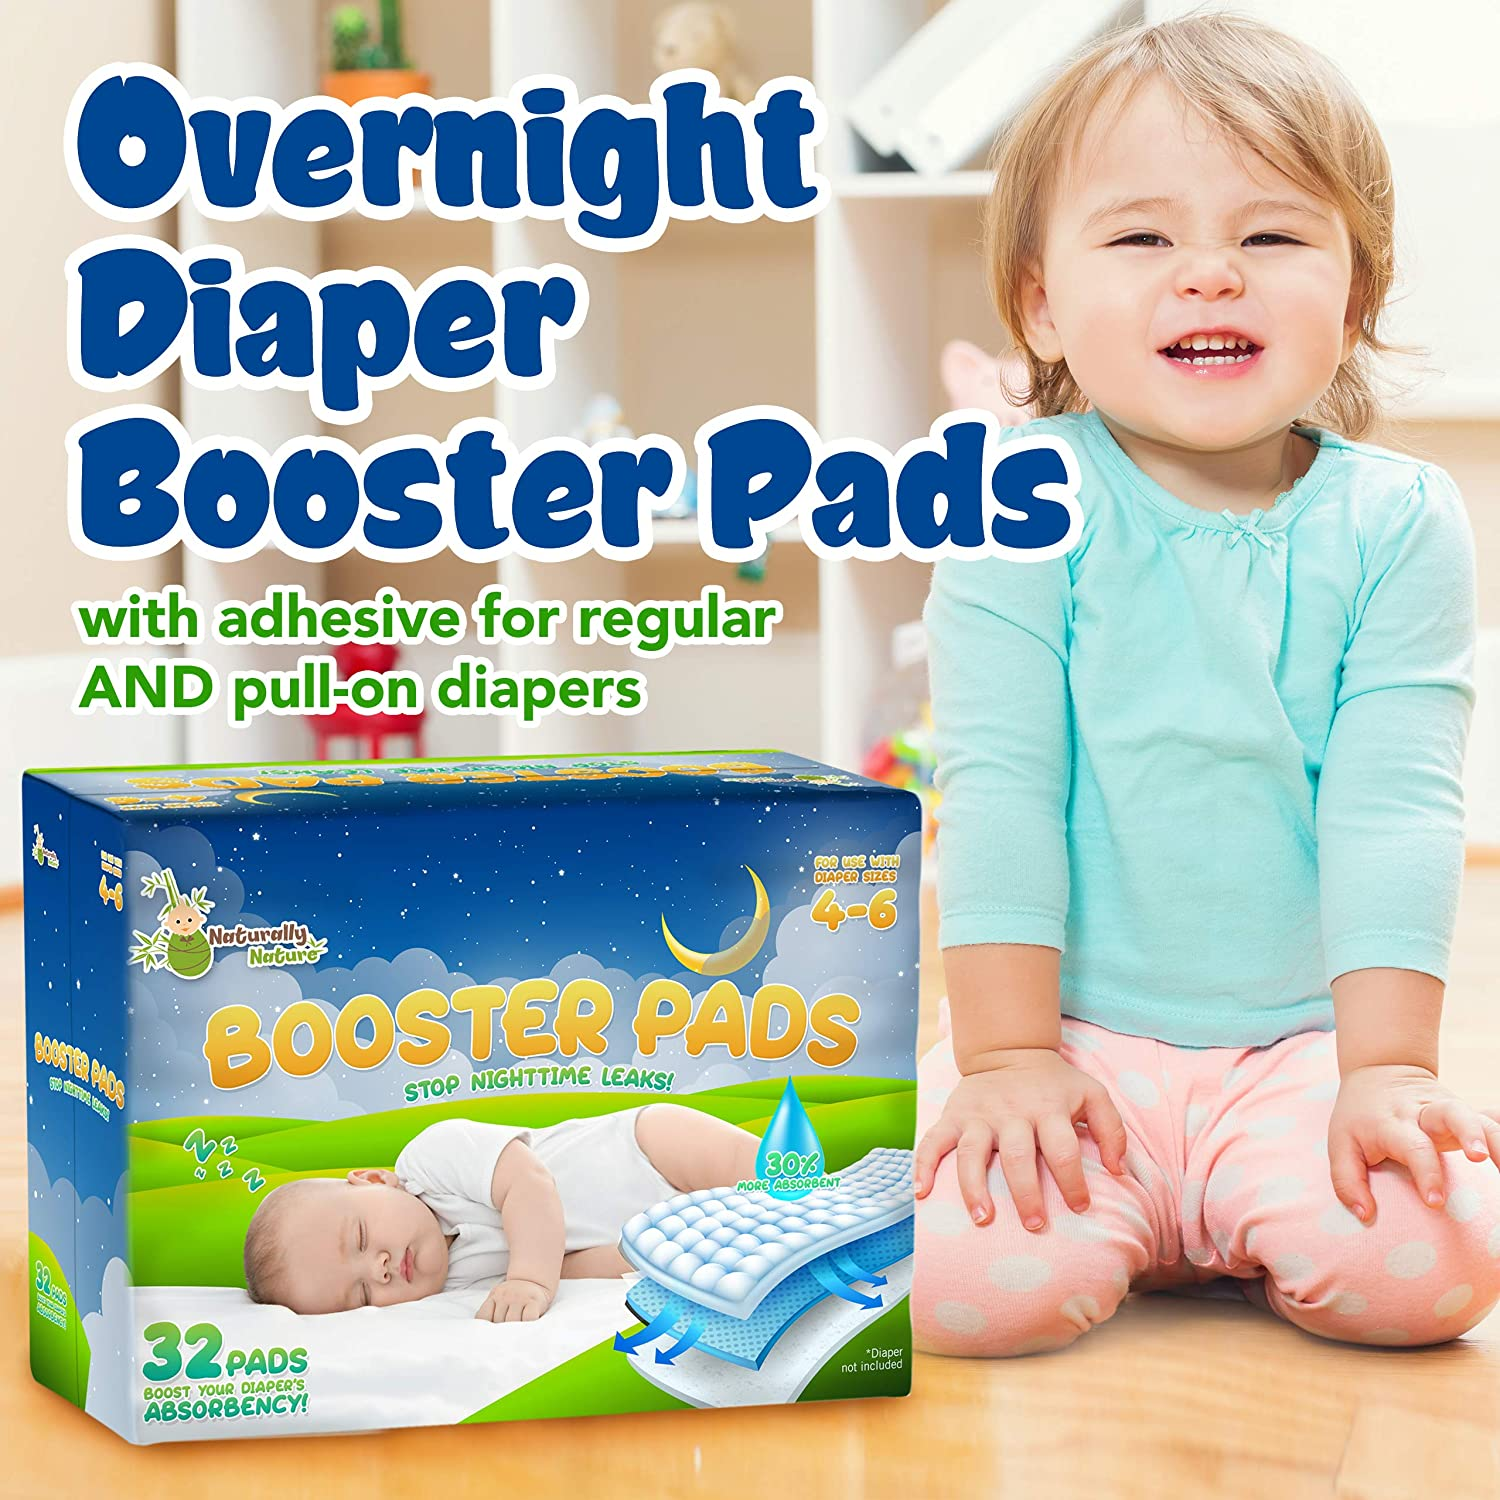 Nighttime Leak Protection for Heavy Wetters and Active Sleepers for Boys /& Girls Naturally Nature Overnight Diaper Doubler Booster Pads with Adhesive for Pull-on /& Regular Diapers